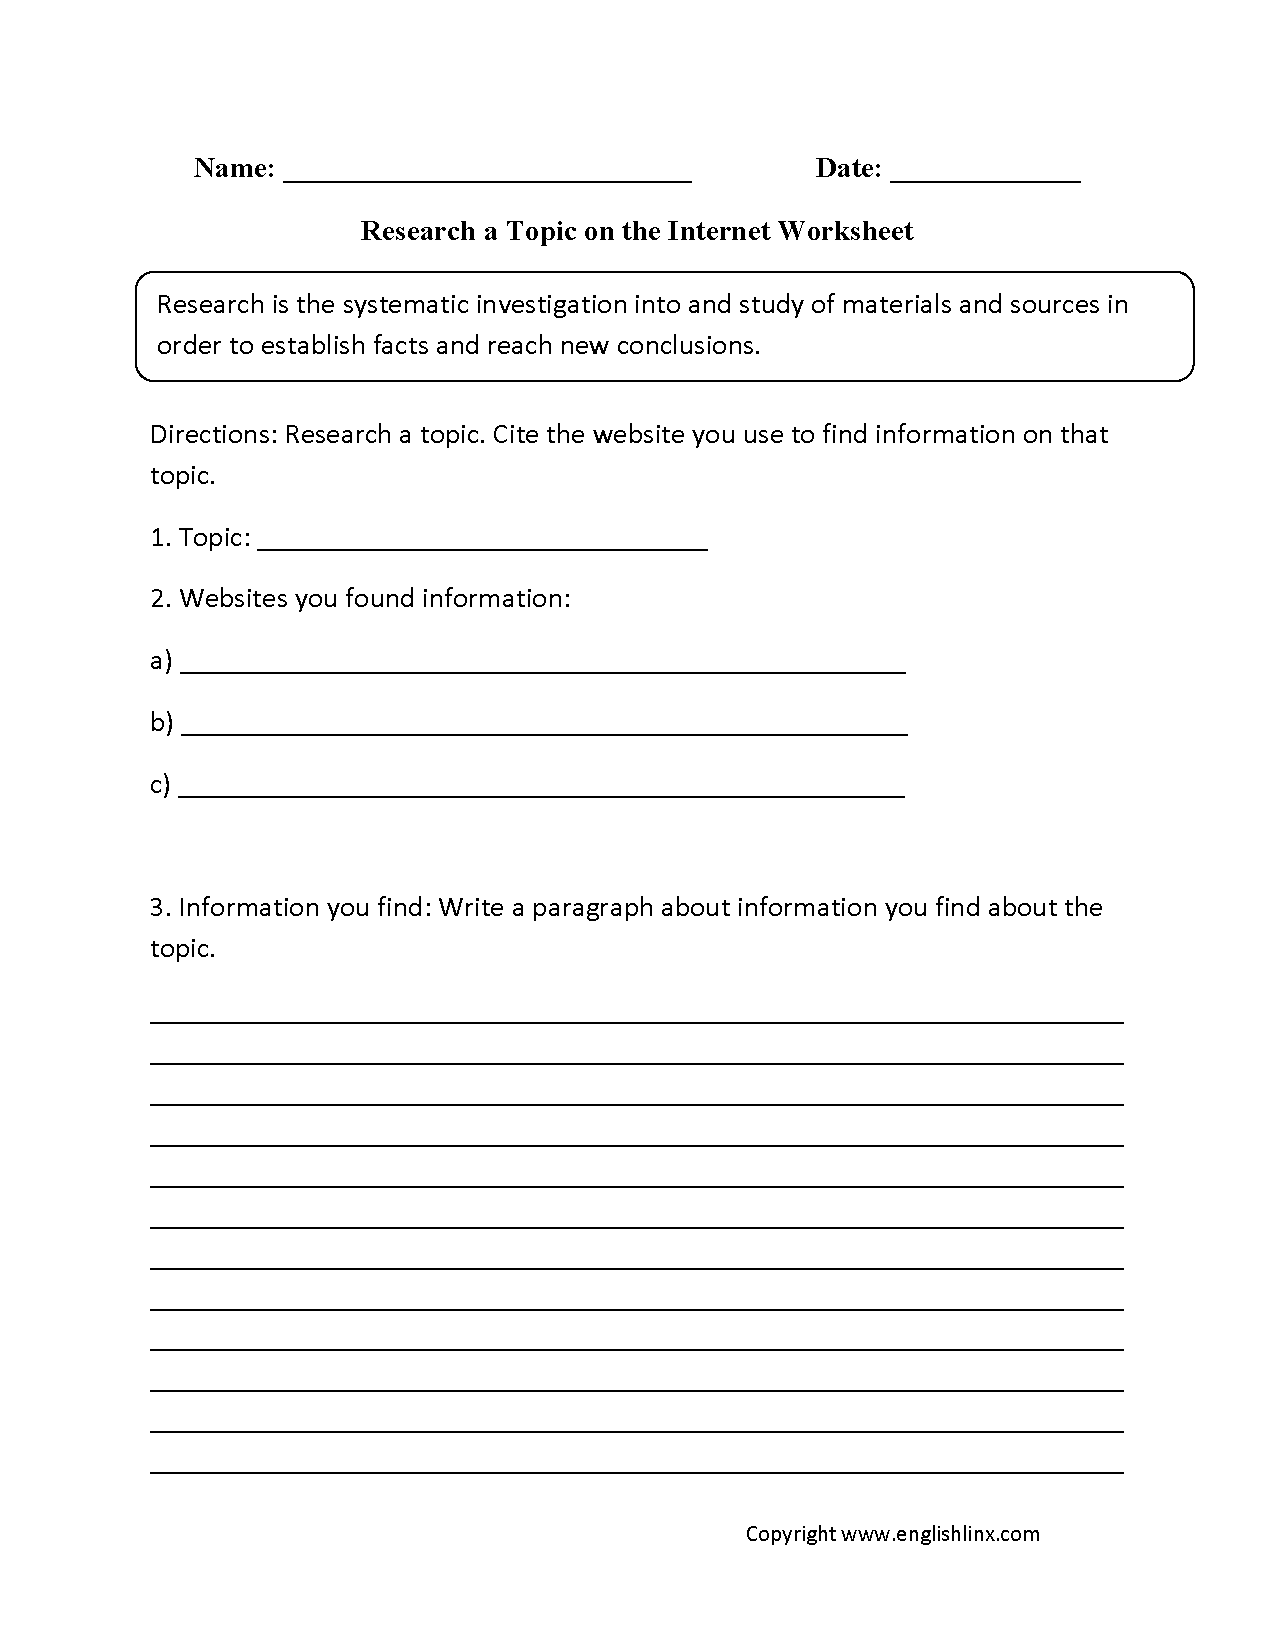 Research A Topic On The Internet Worksheet